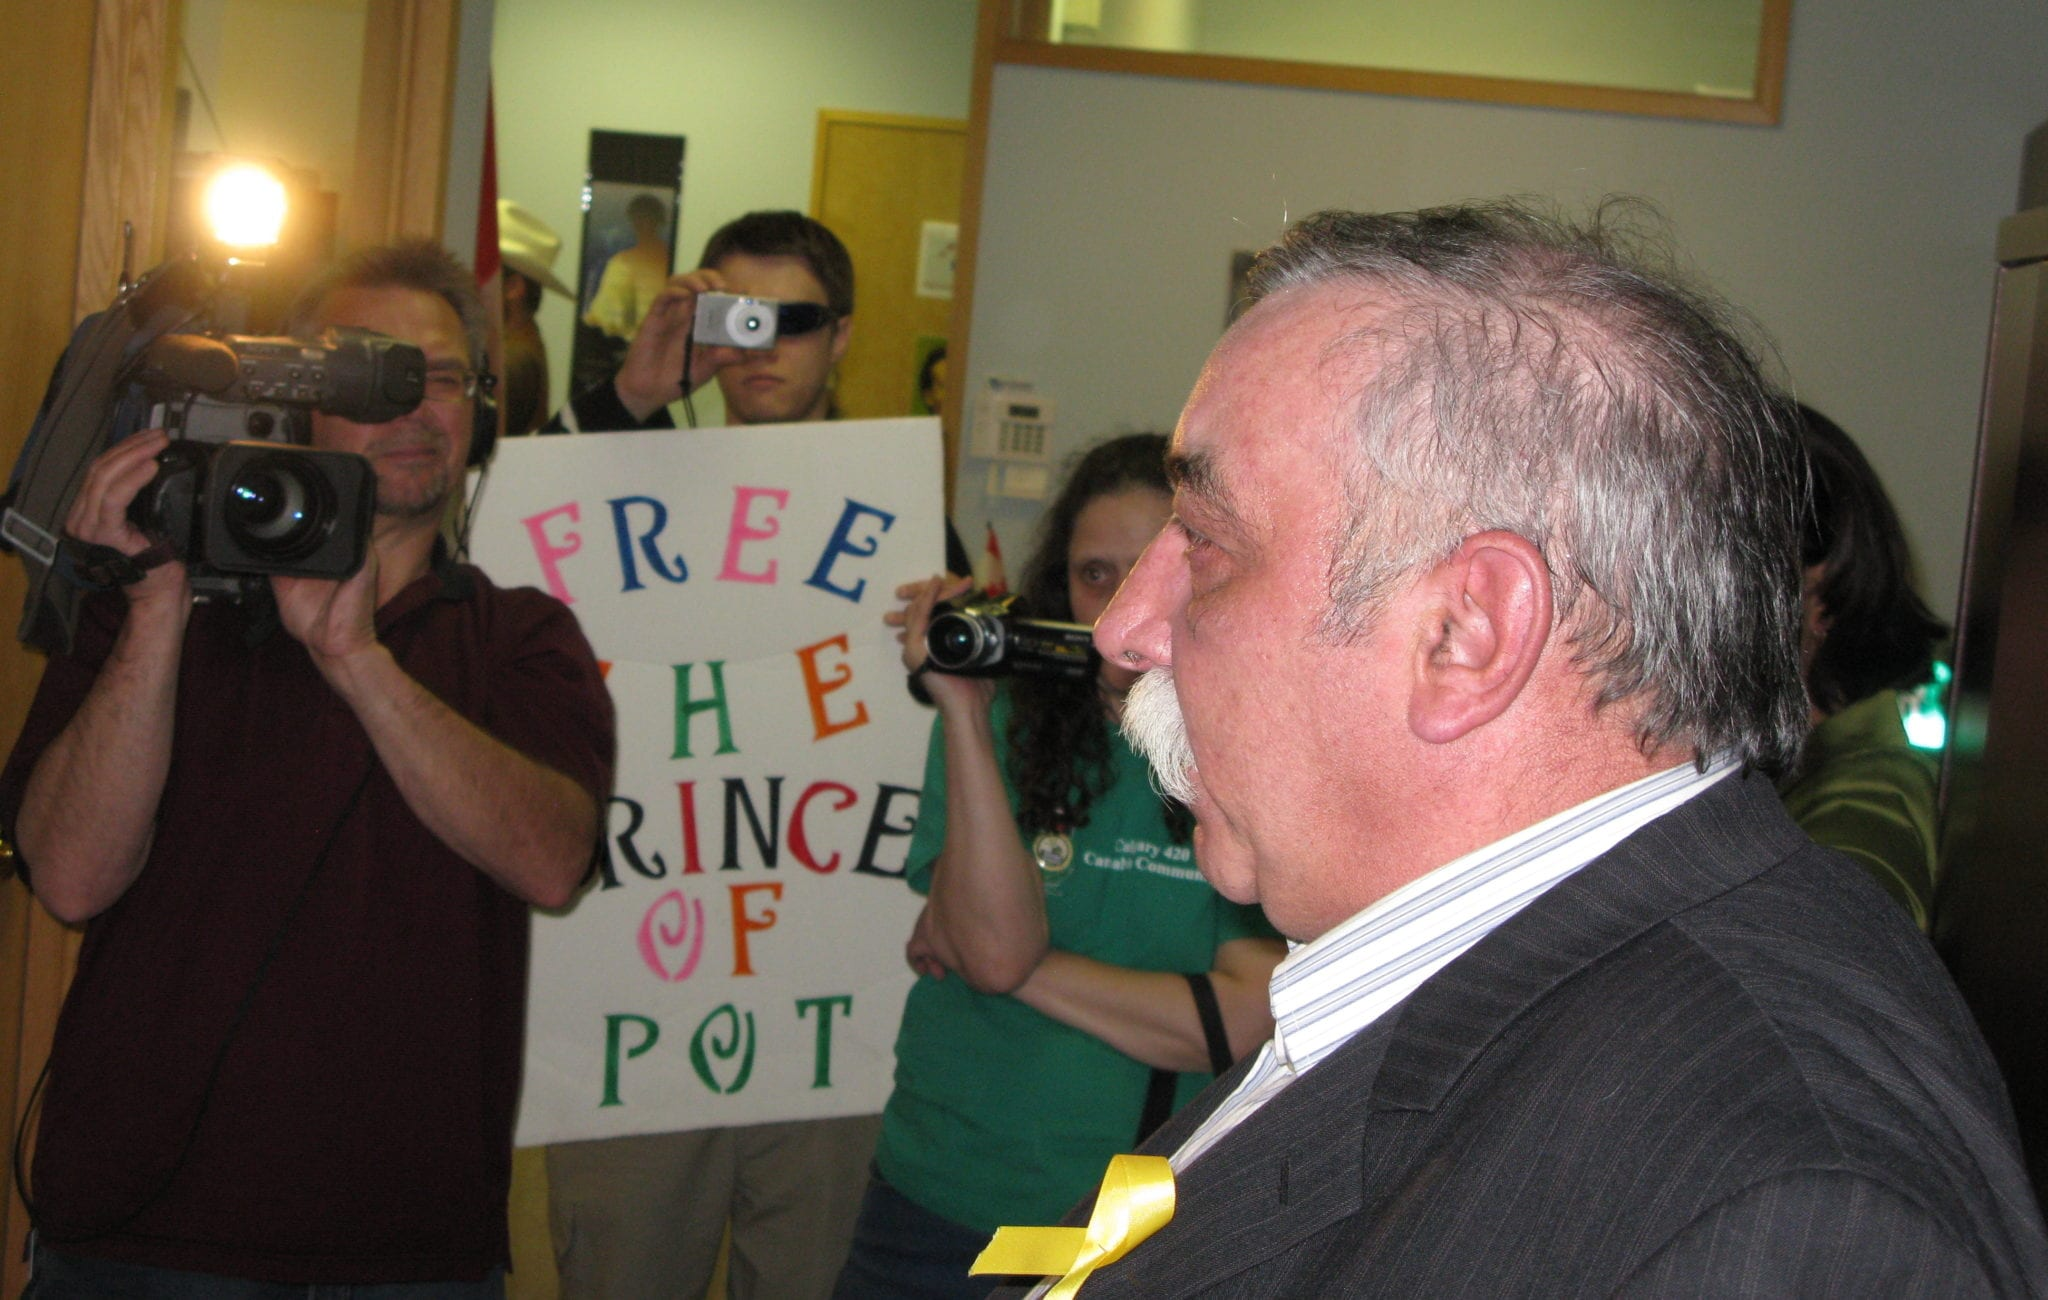 Old guard cannabis activists rally to support one of their own